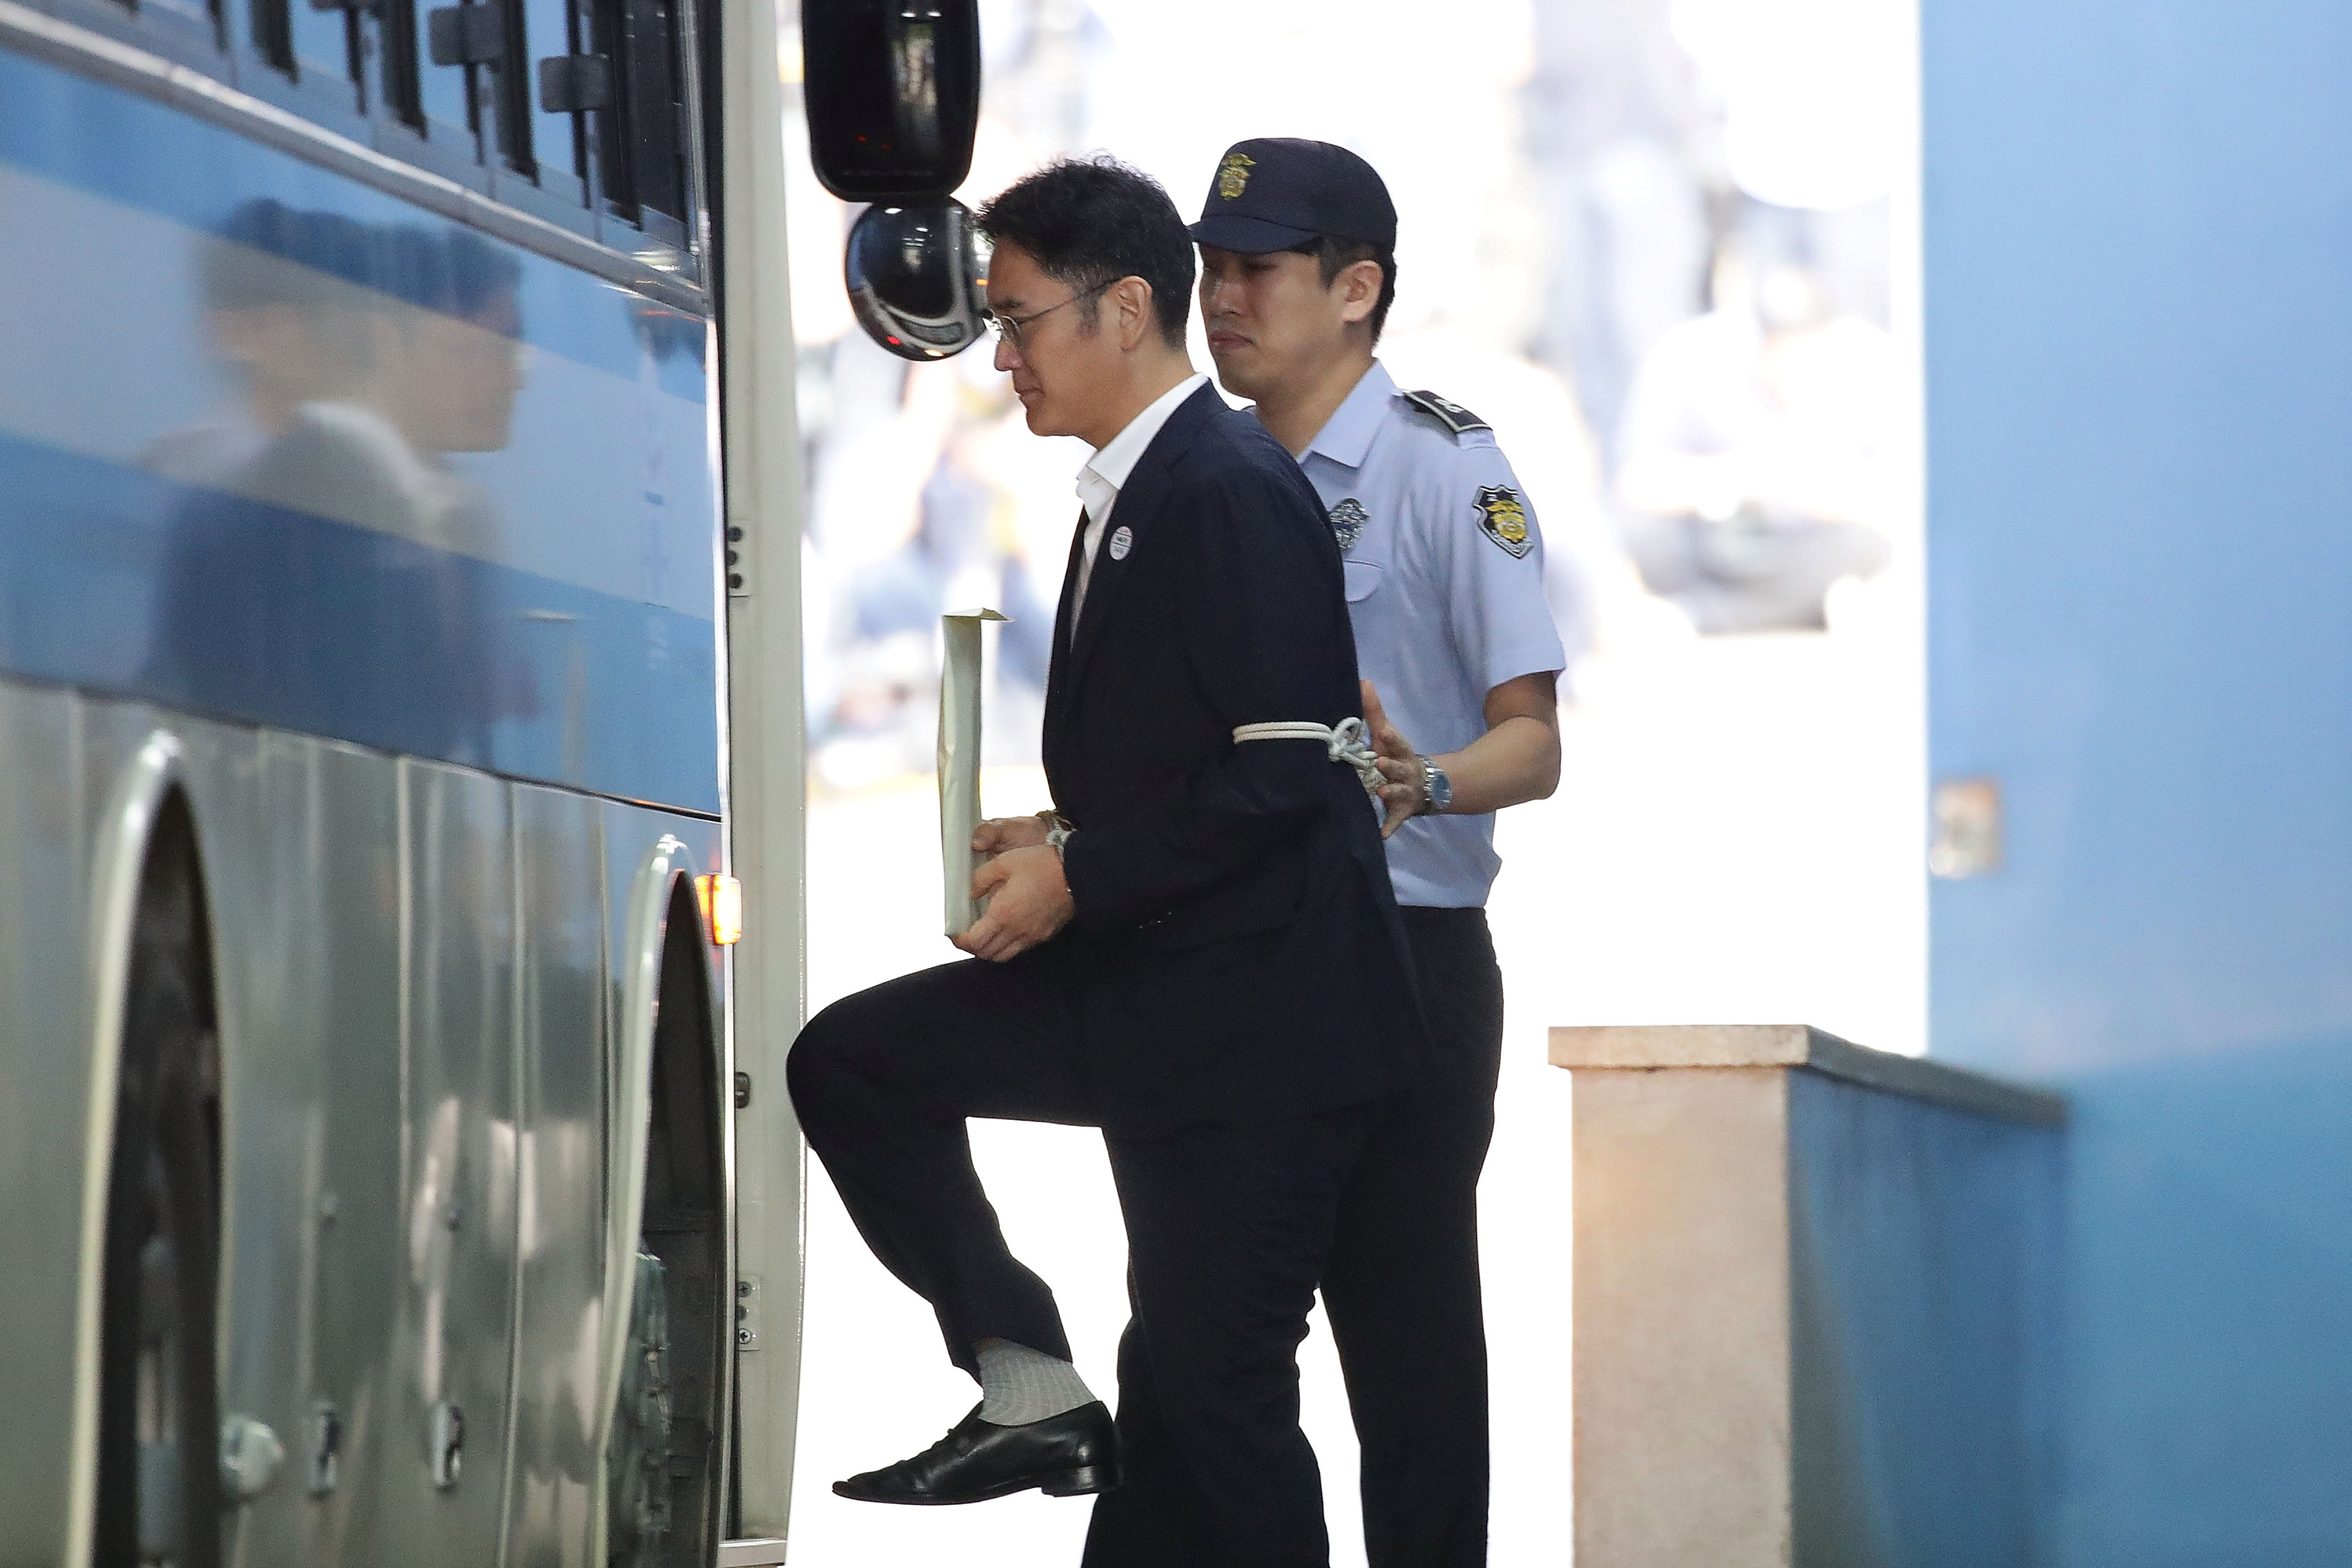 Lee Jae-yong, Samsung Group heir, leaves after his verdict trial at the Seoul Central District Court in Seoul, South Korea on August 25, 2017. (REUTERS/Chung Sung-Jun/Pool)